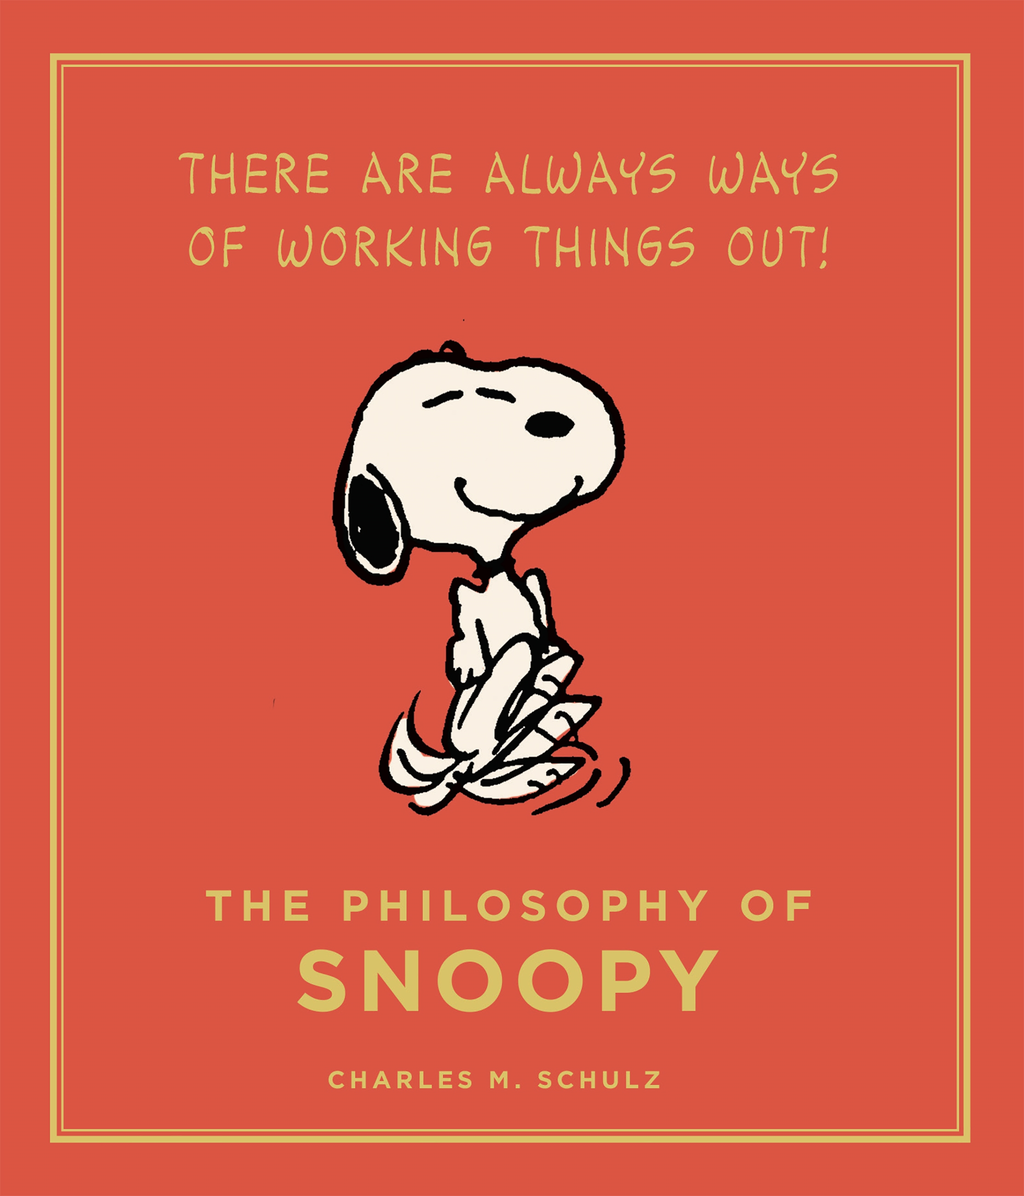 The Philosophy of Snoopy Peanuts Guide to Life